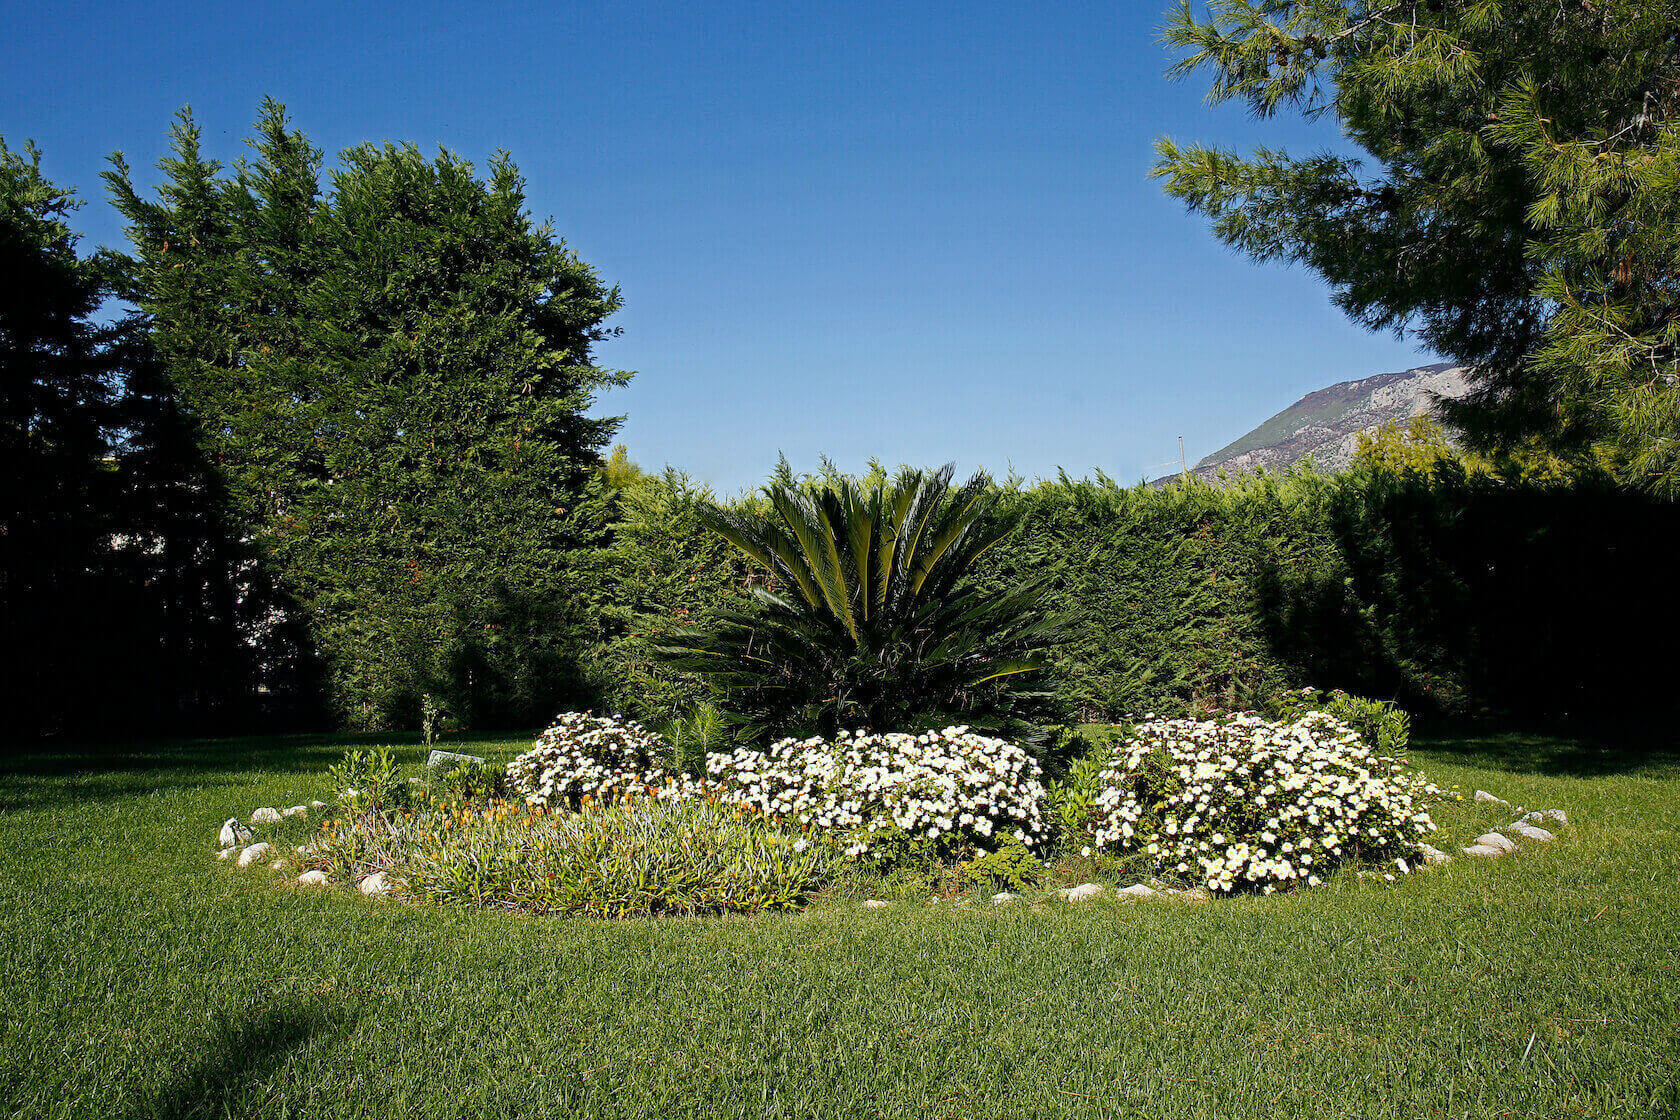 The Loutraki Green Villa private gardens, with trees, bushes and flowers.